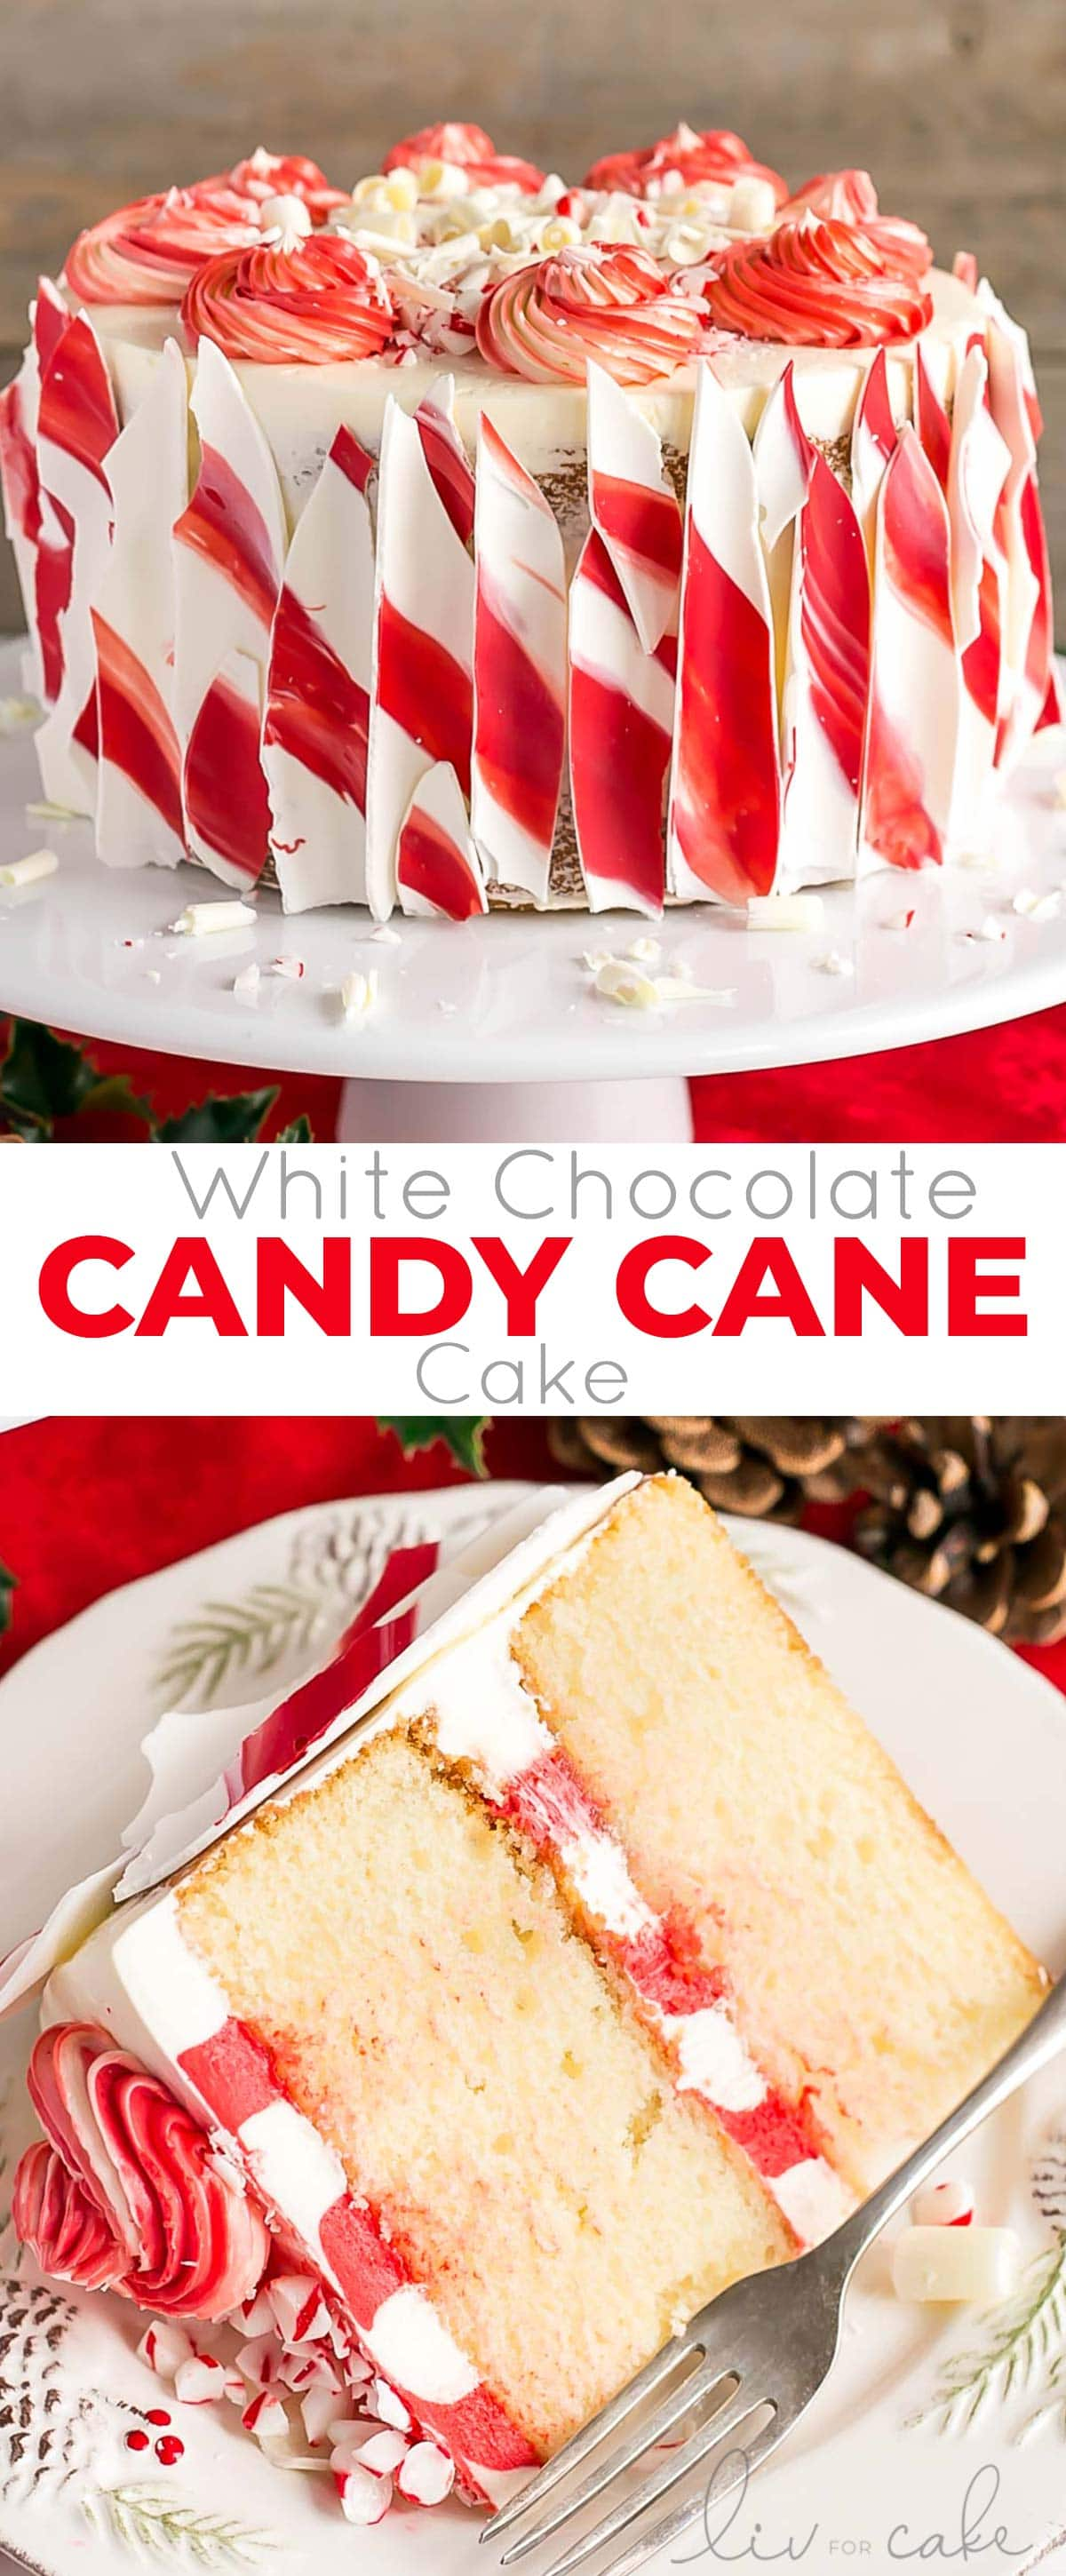 White Chocolate Candy Cane Cake photo collage